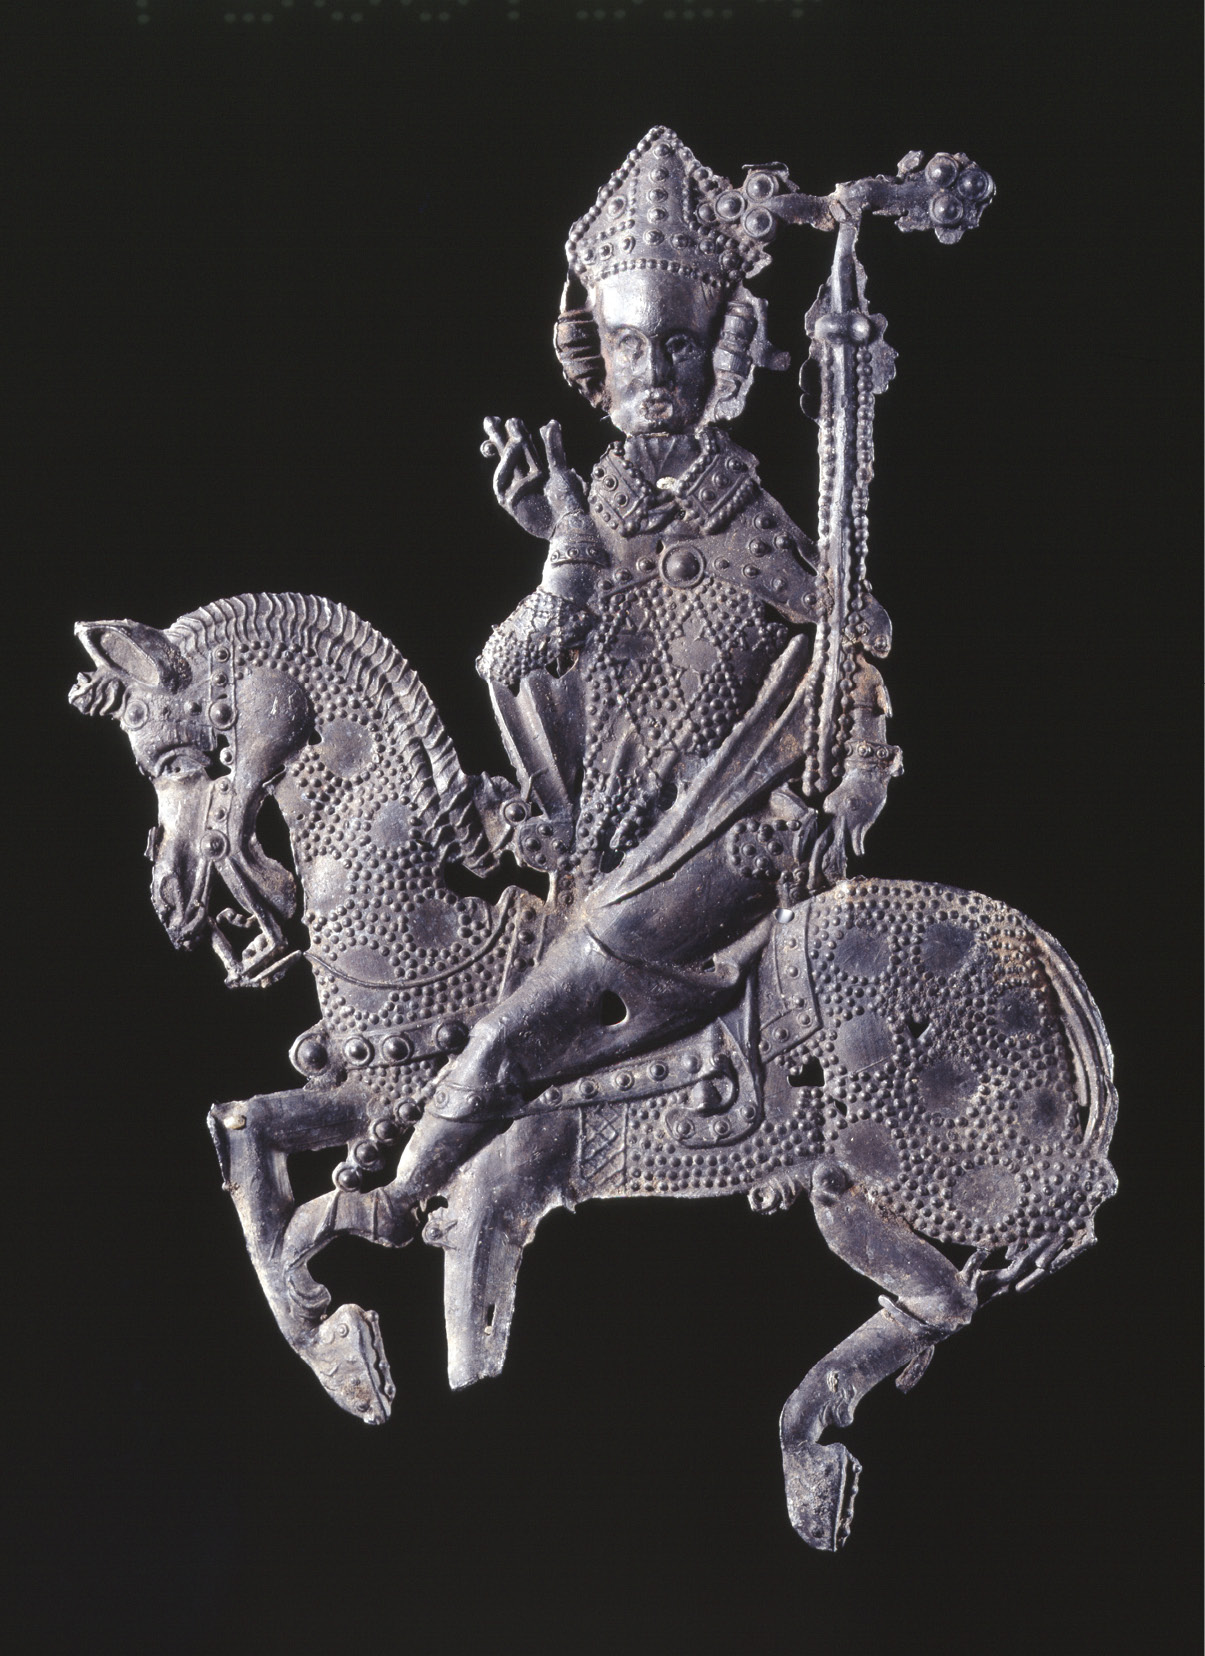 ABOVE Pilgrim badge, showing Becket on horseback returning from exile, 14th century. Lead alloy. Size: 9.3 x 7.7cm